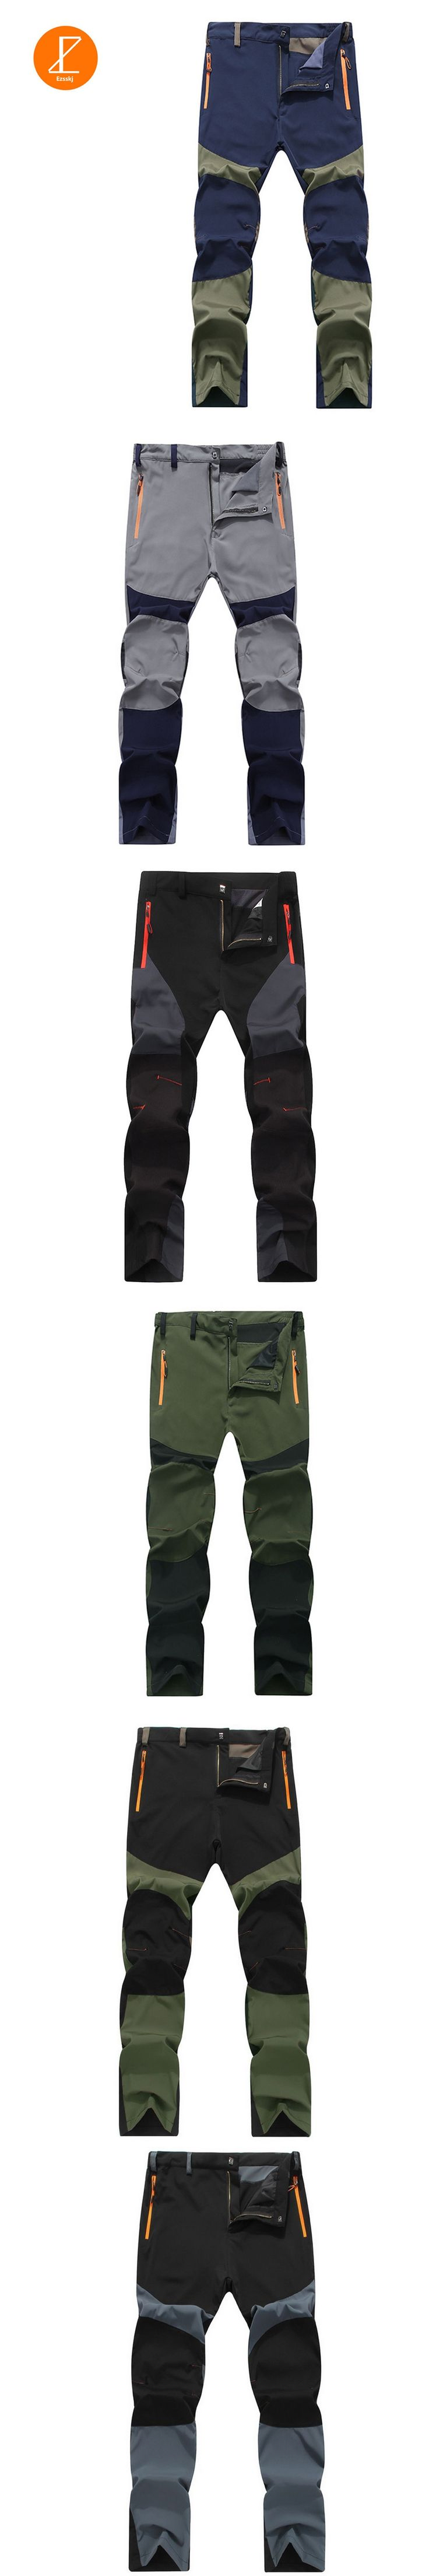 Ezsskj Men's Guys Outdoor Travel Pants Overalls Summer Waterproof Camping Hiking Climbing Trousers Stretch Breathable Pants